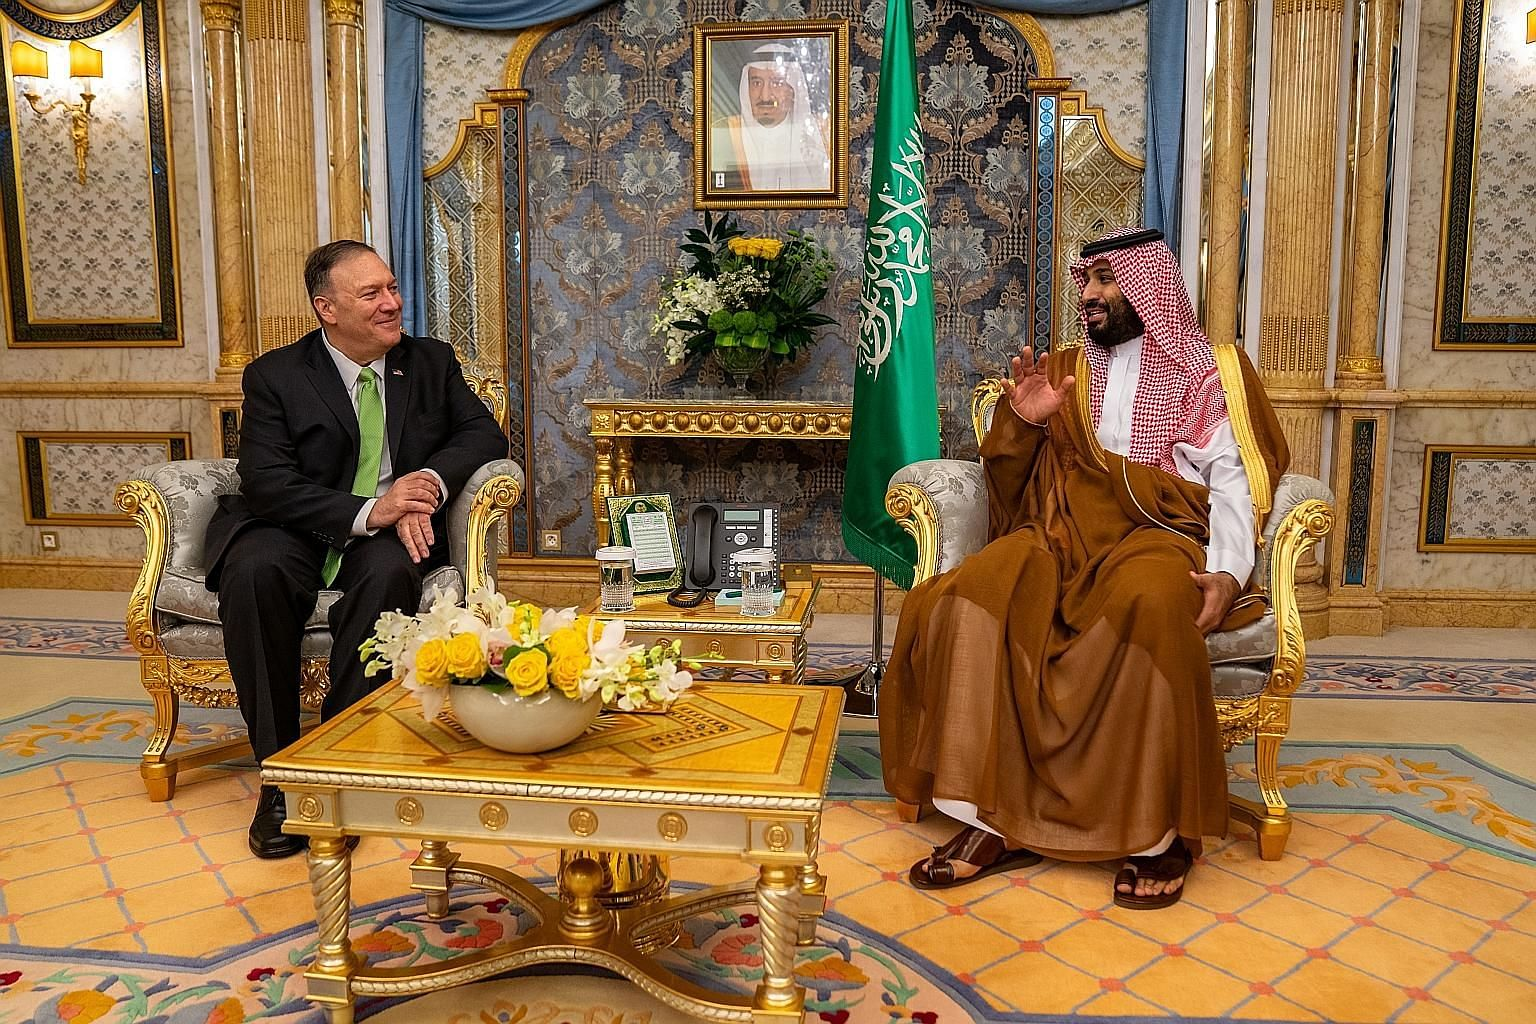 US Secretary of State Mike Pompeo met Saudi Crown Prince Mohammed bin Salman in Jeddah on Wednesday to discuss last Saturday's drone and cruise missile attacks on an oil processing facility and oil field in the kingdom. PHOTO: EPA-EFE